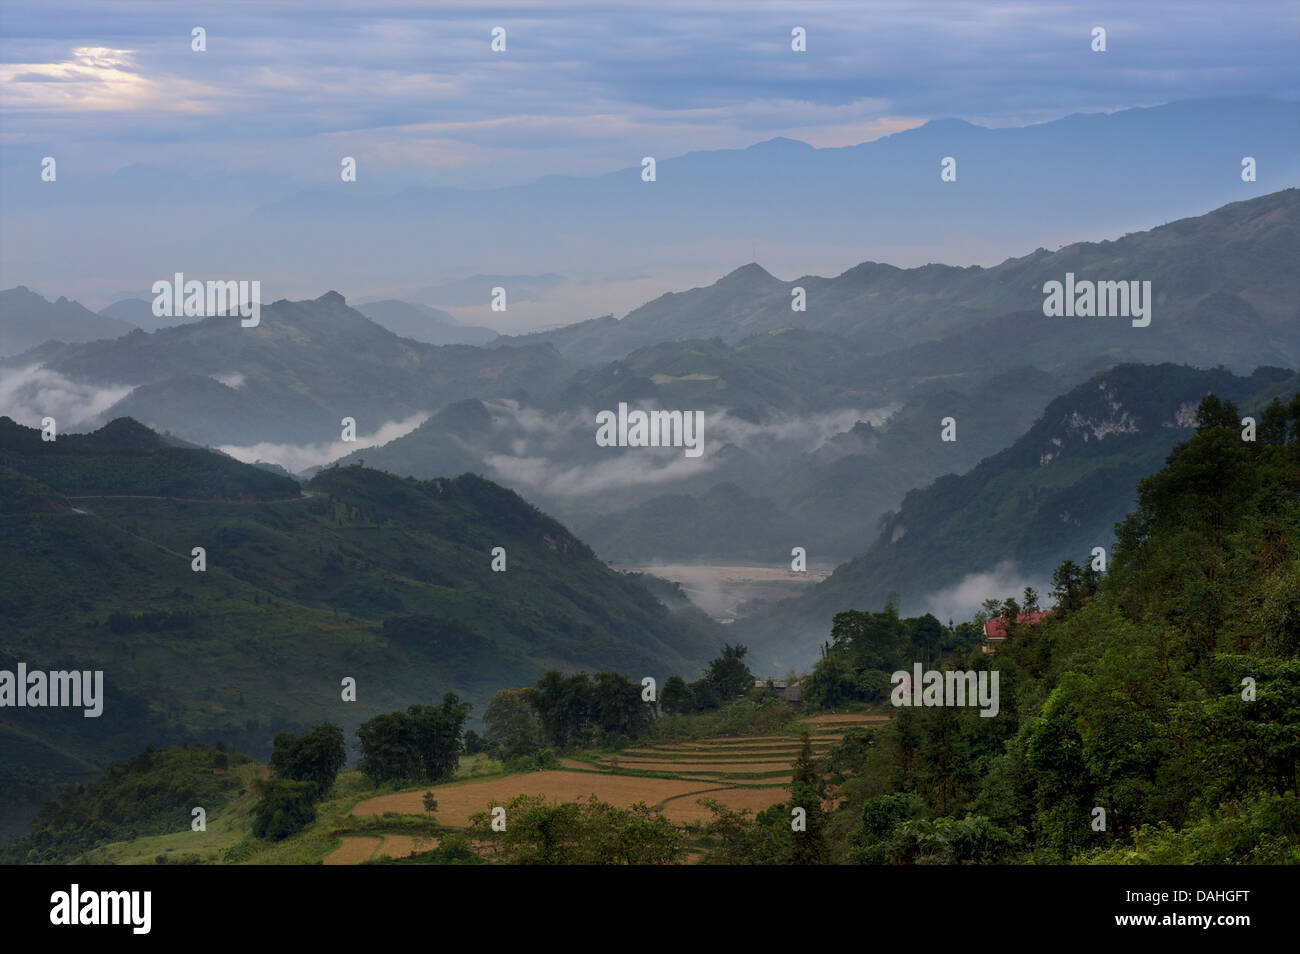 Rural scenery between hilltribe community of Bac Ha and Coc Ly. Lao Cai Province, Vietnam - Stock Image